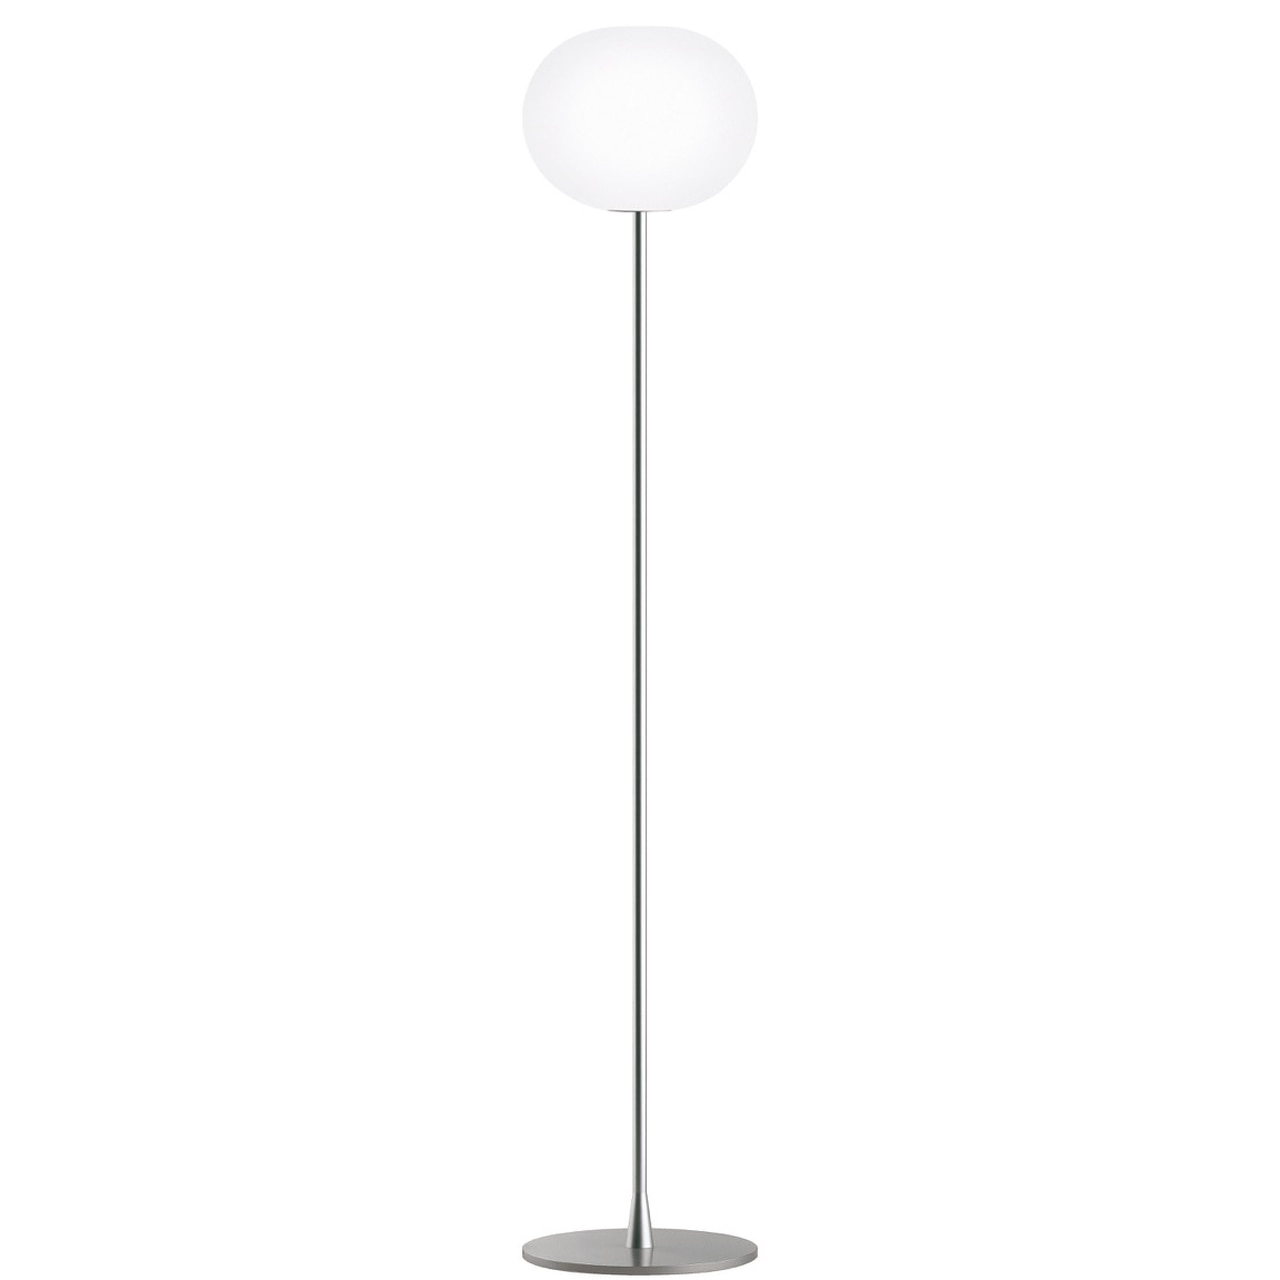 Glo-Ball Floor Dimmable Lamp in Silver and Black